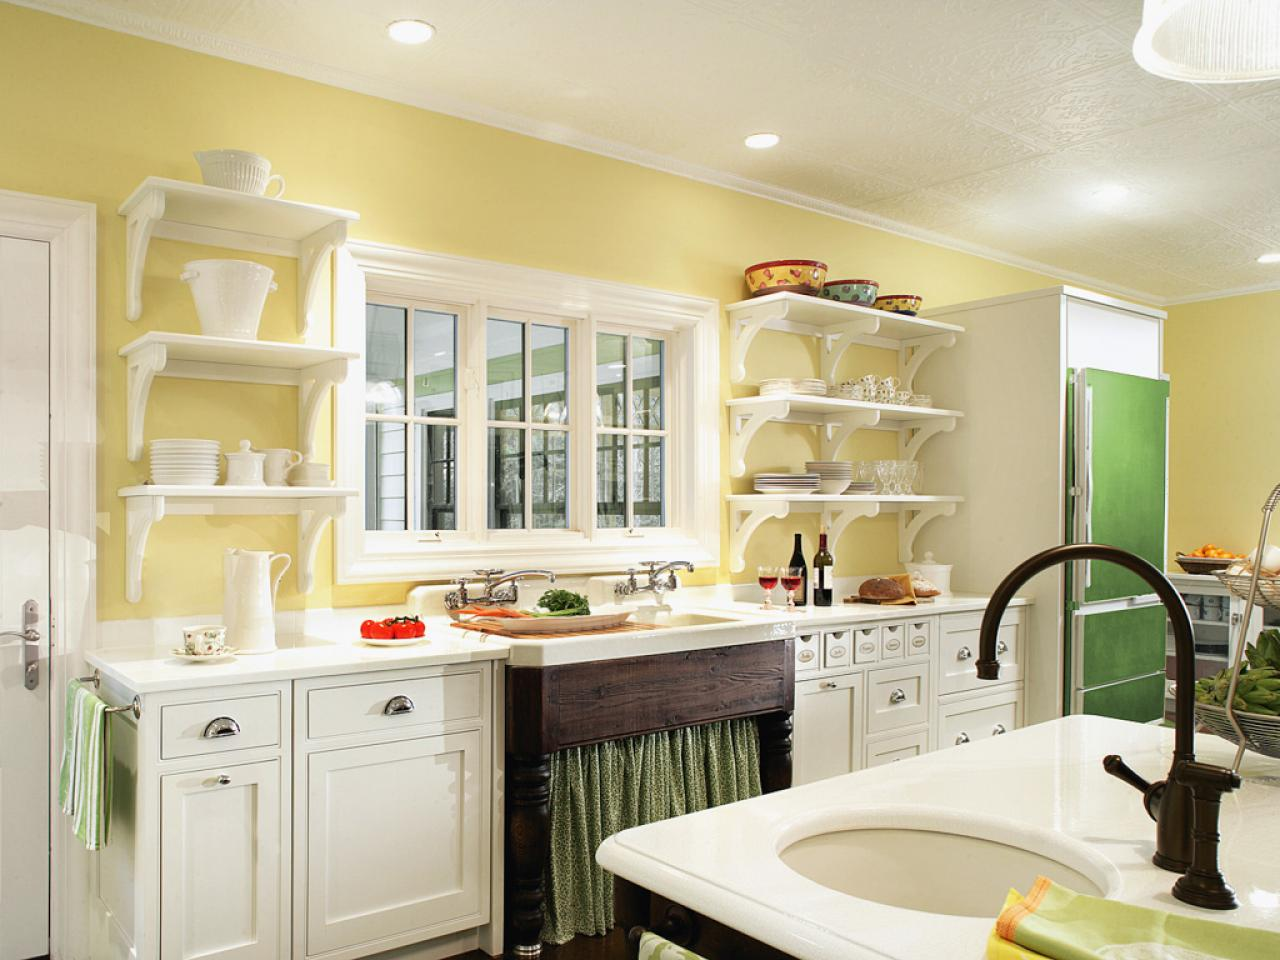 Kitchen Design Yellow Cabinets Painted Kitchen Shelves Pictures Ideas And Tips From Hgtv